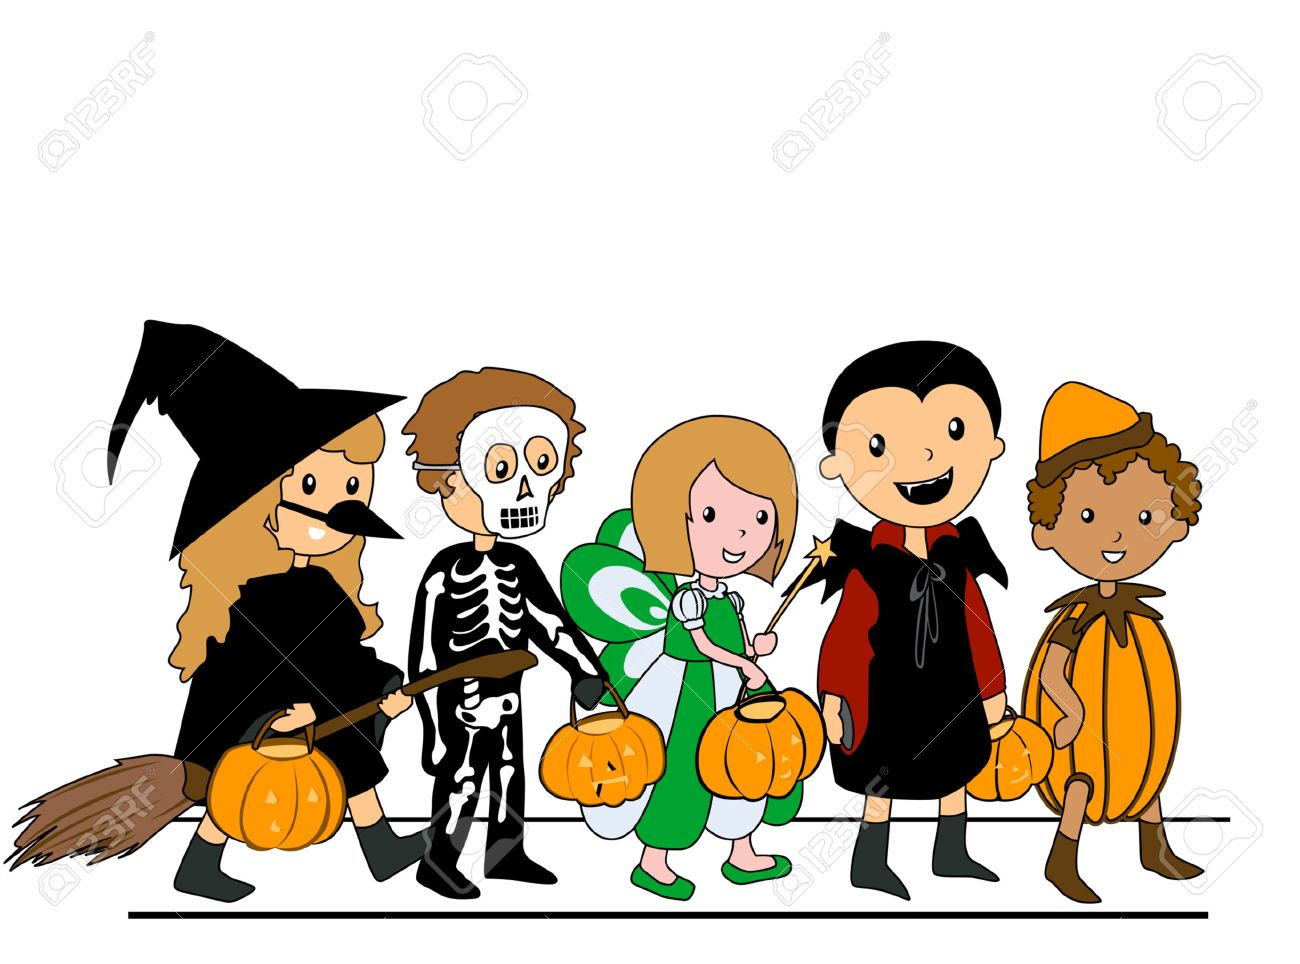 http://previews.123rf.com/images/lenm/lenm0709/lenm070900078/1768758-Kids-walking-in-Halloween-Costumes-Stock-Vector-cartoon.jpg